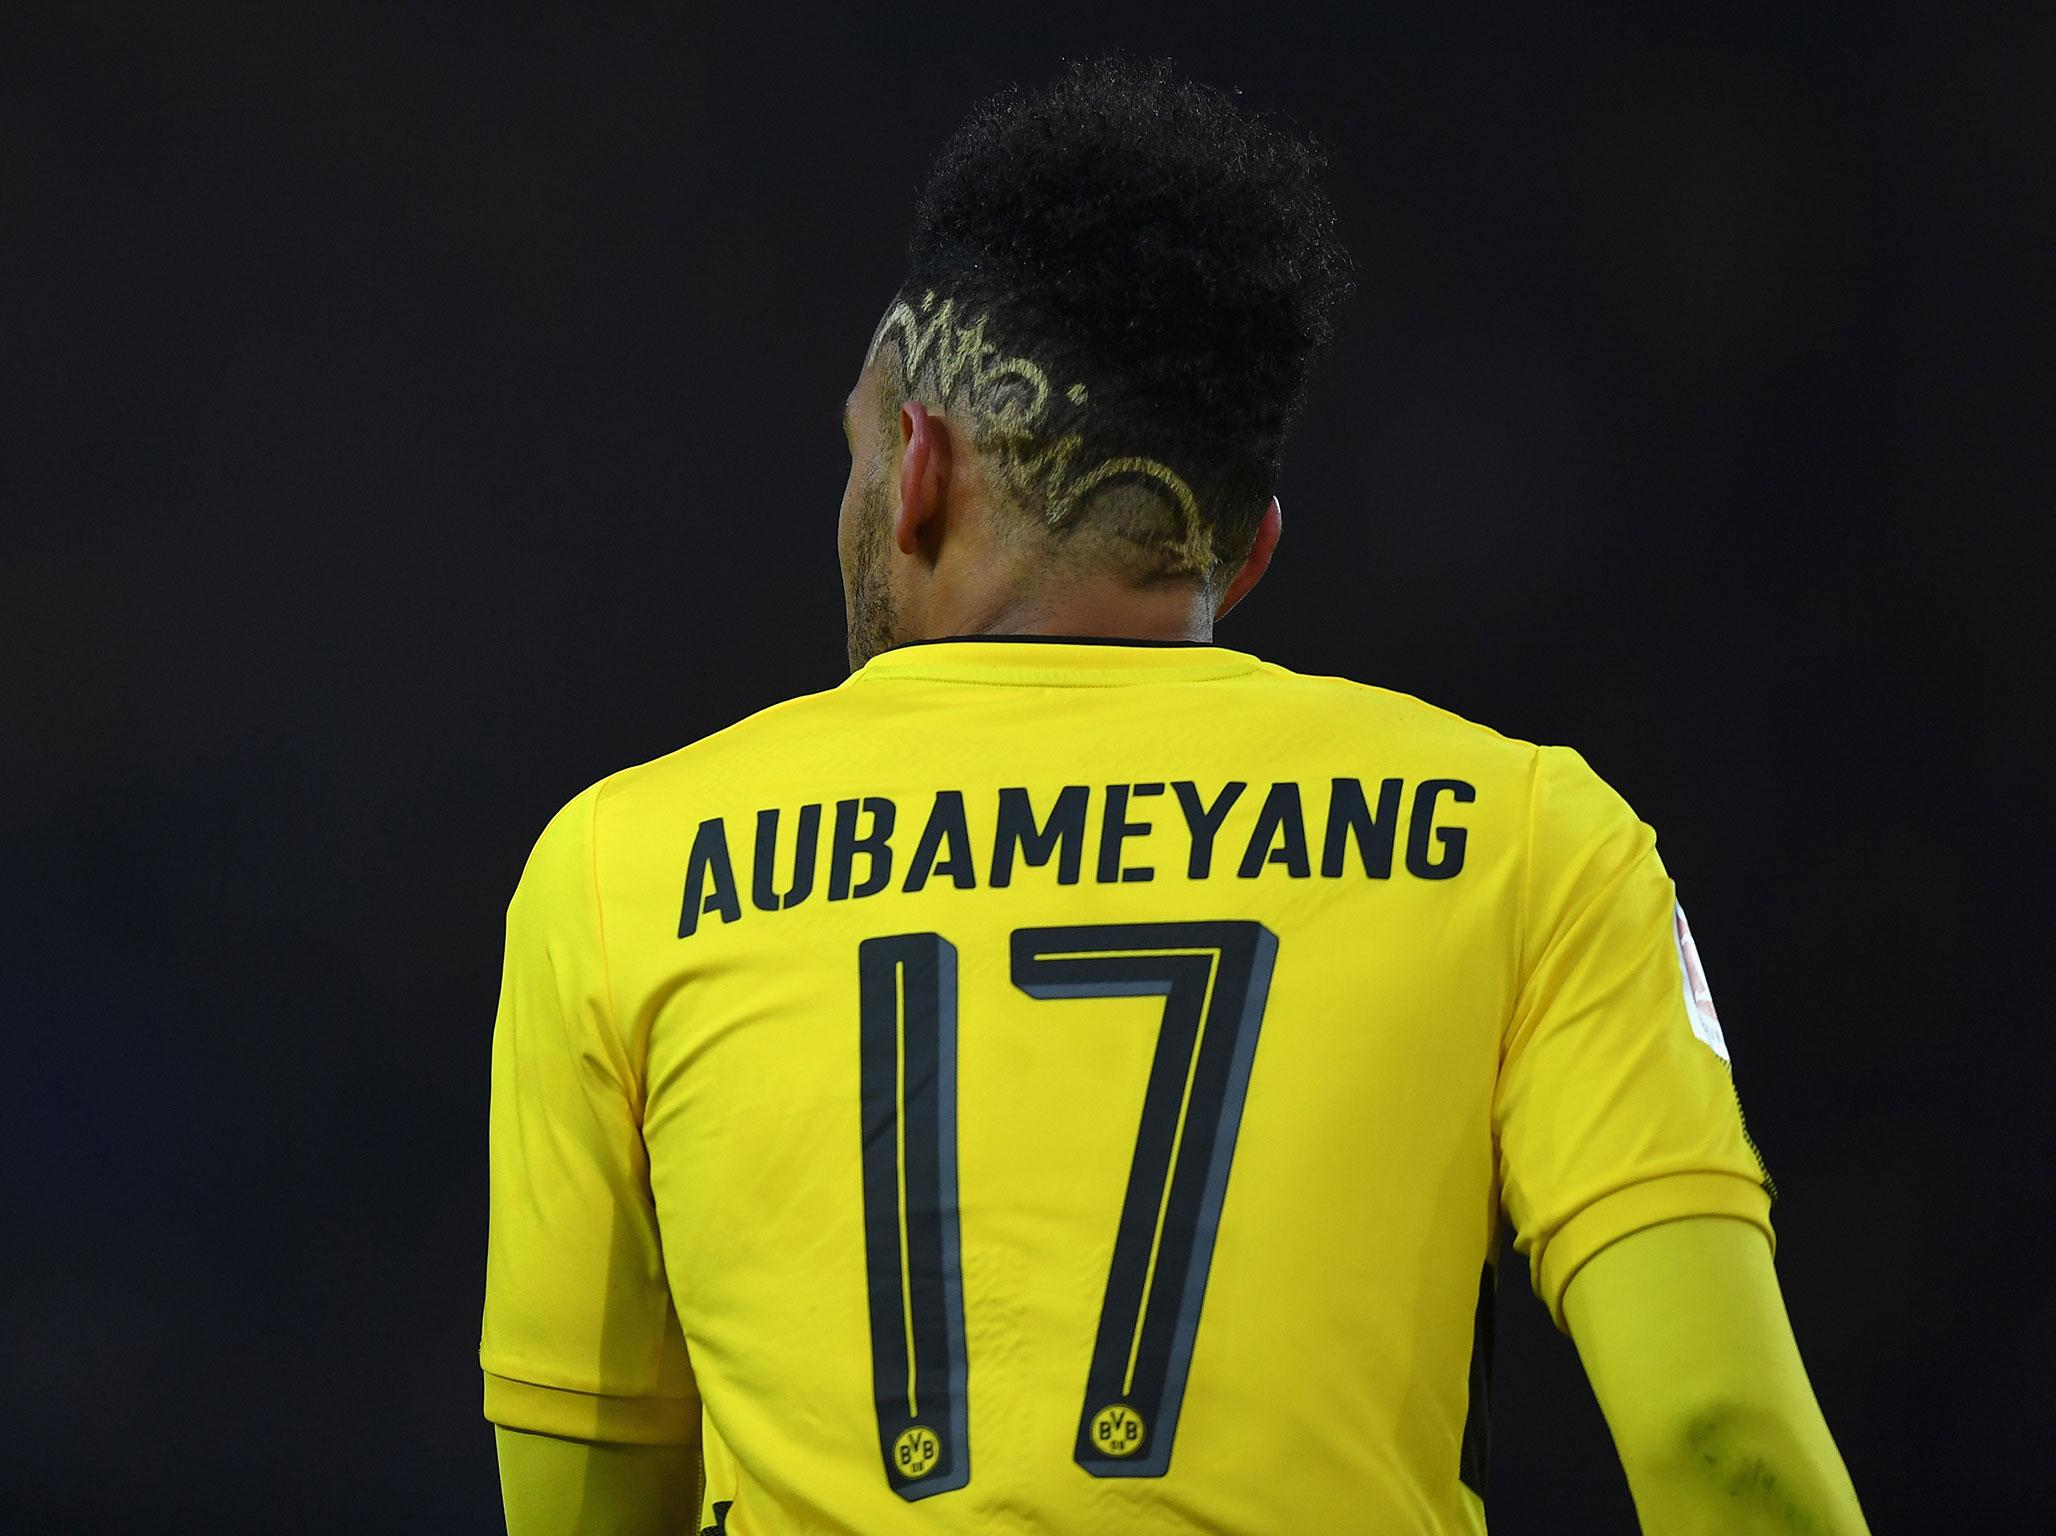 Transfer news LIVE: Aubameyang deal latest, Chelsea target Arsenal star, United given boost, Neymar to leave PSG